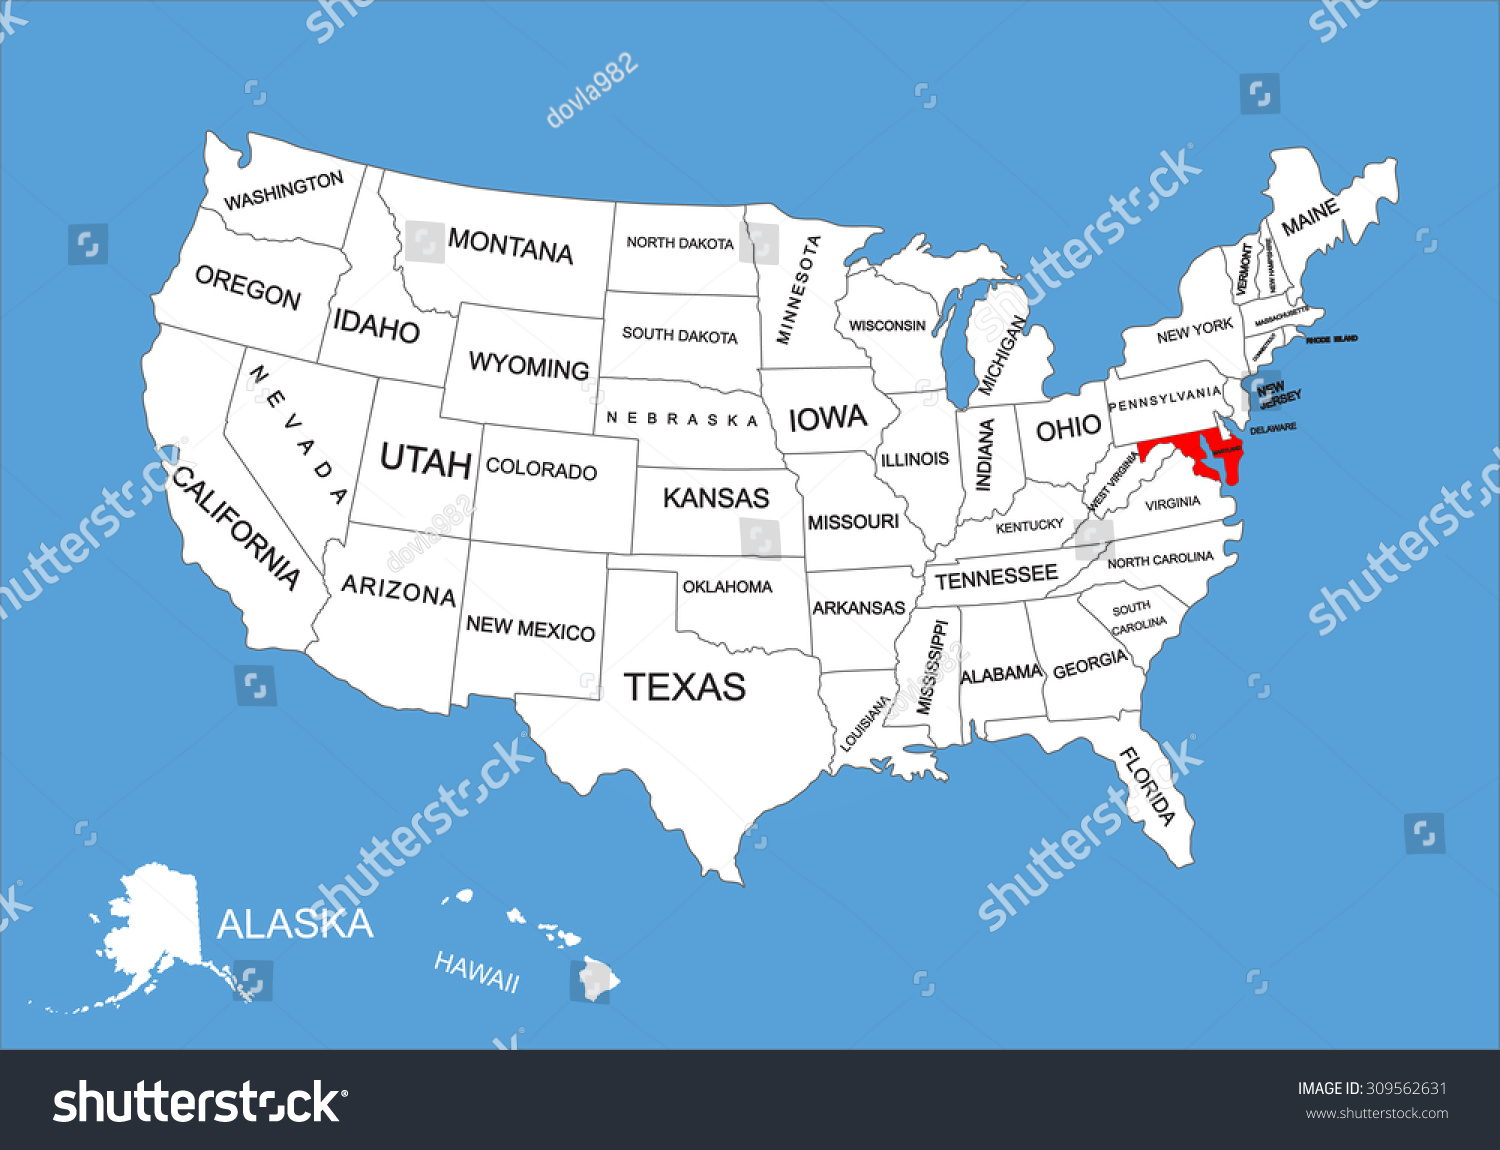 Maryland State Usa Vector Map Isolated On United States